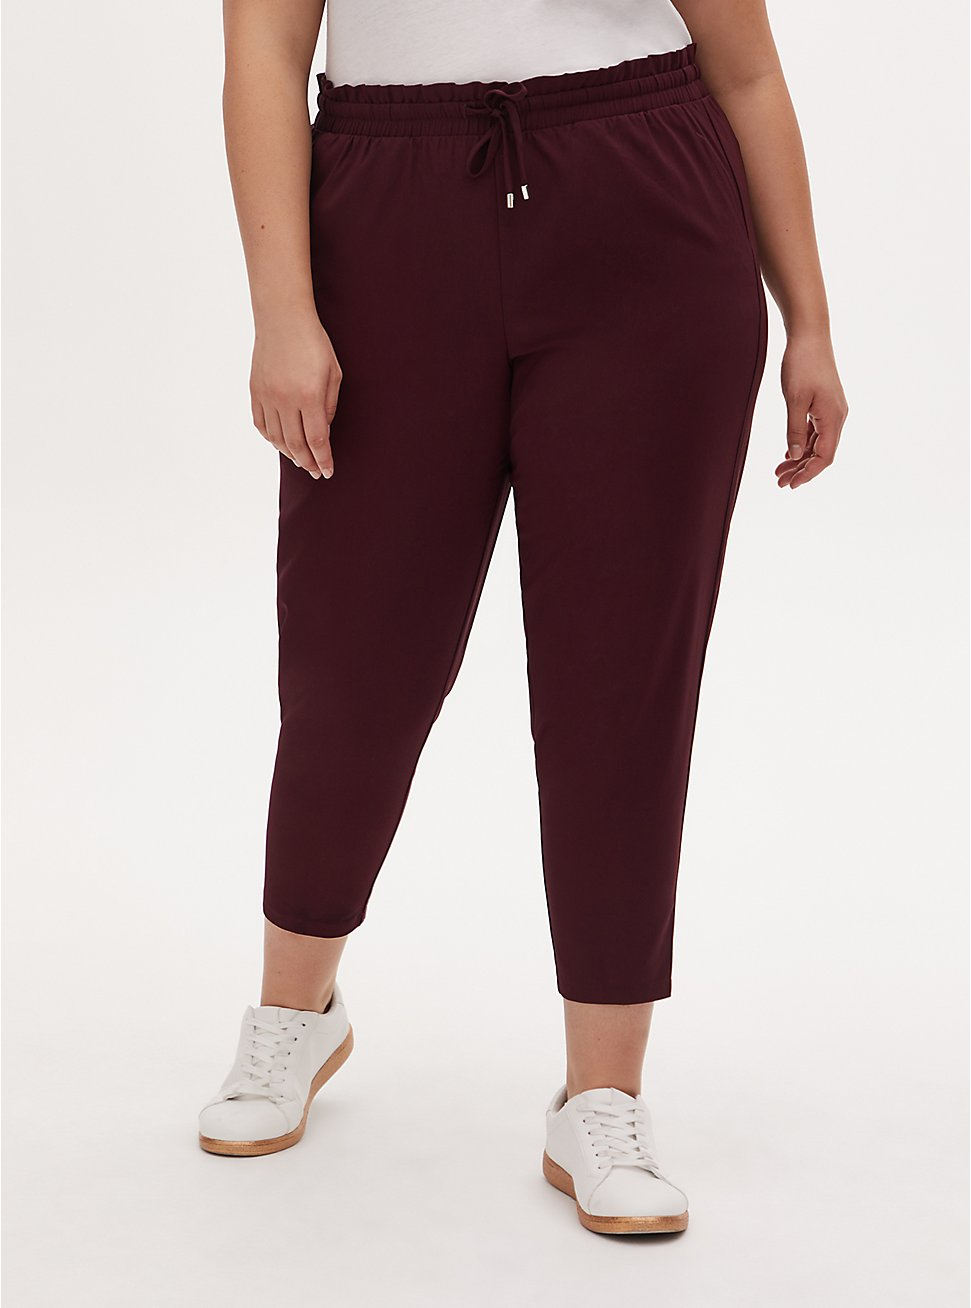 Burgundy Purple Crepe Paperbag Waist Tapered Pant, WINETASTING, hi-res